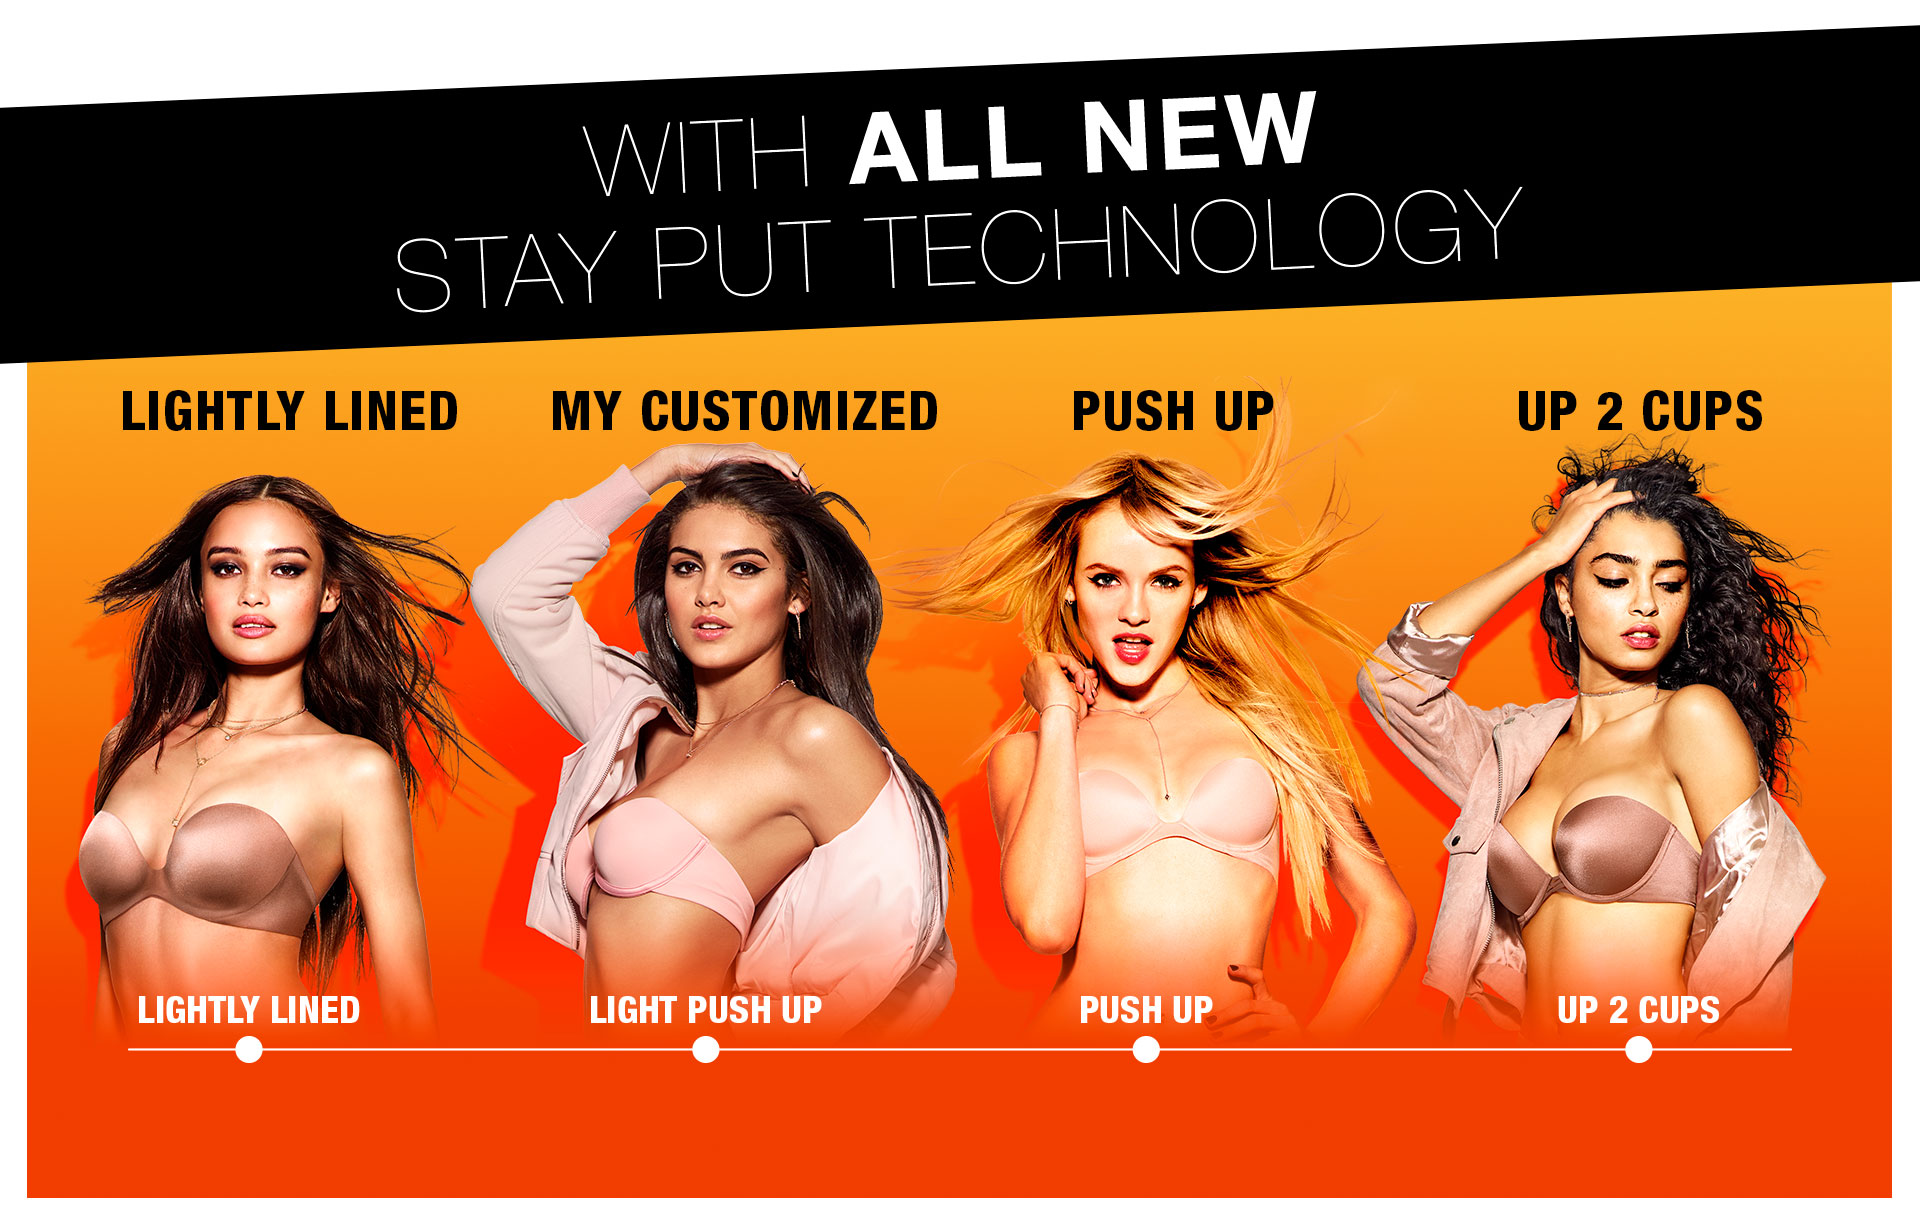 With all new stay put technology. Light lined. My customized. Push up. Up 2 cups.